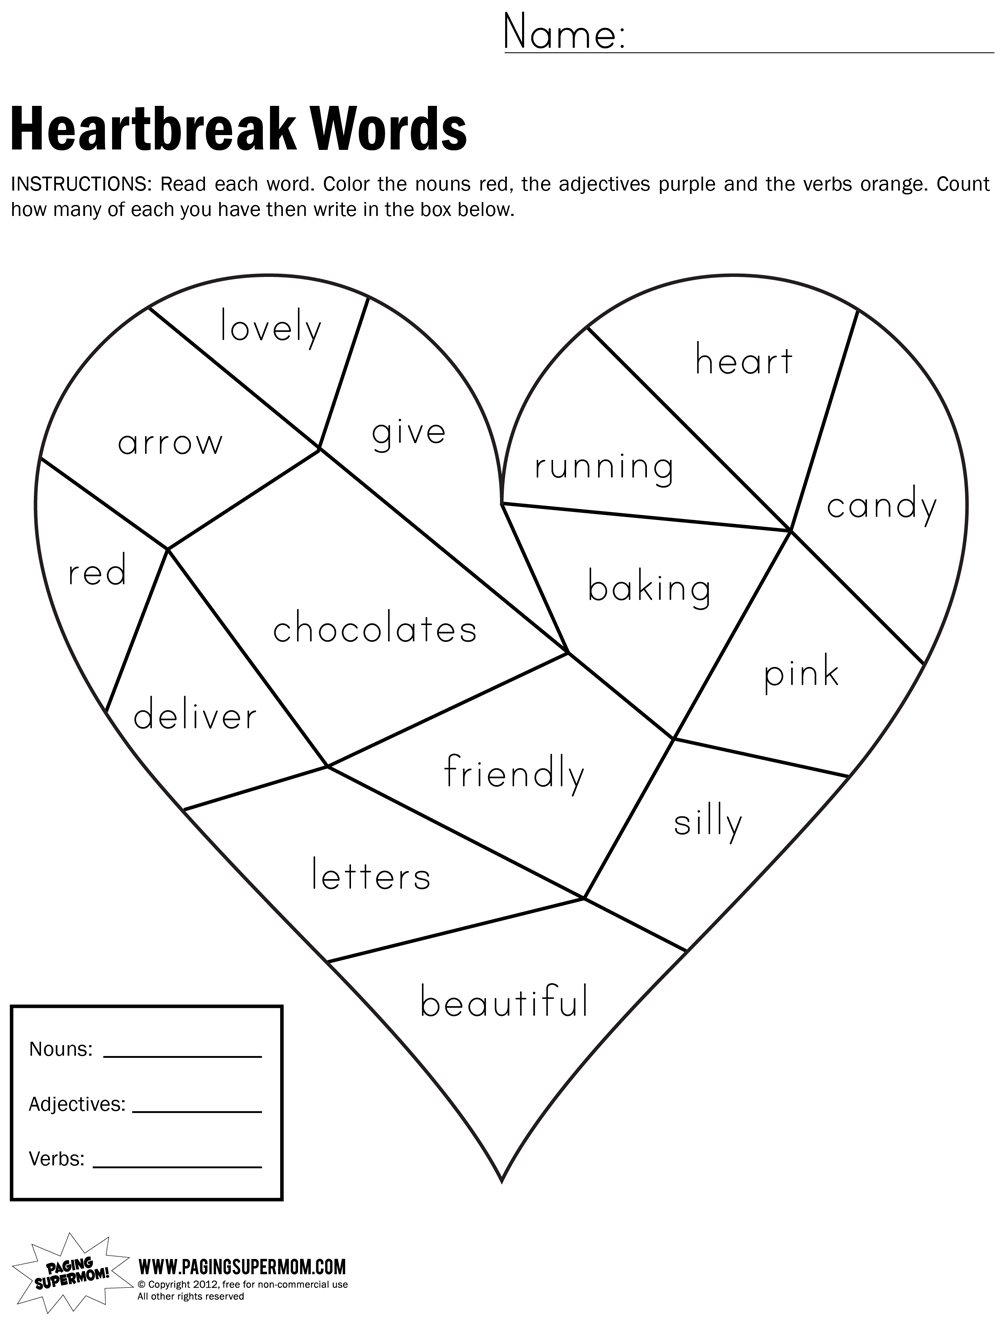 worksheet Printable First Grade Math Worksheets school stuff math pinterest coloring sheets coins and printable first grade worksheets on second sheets